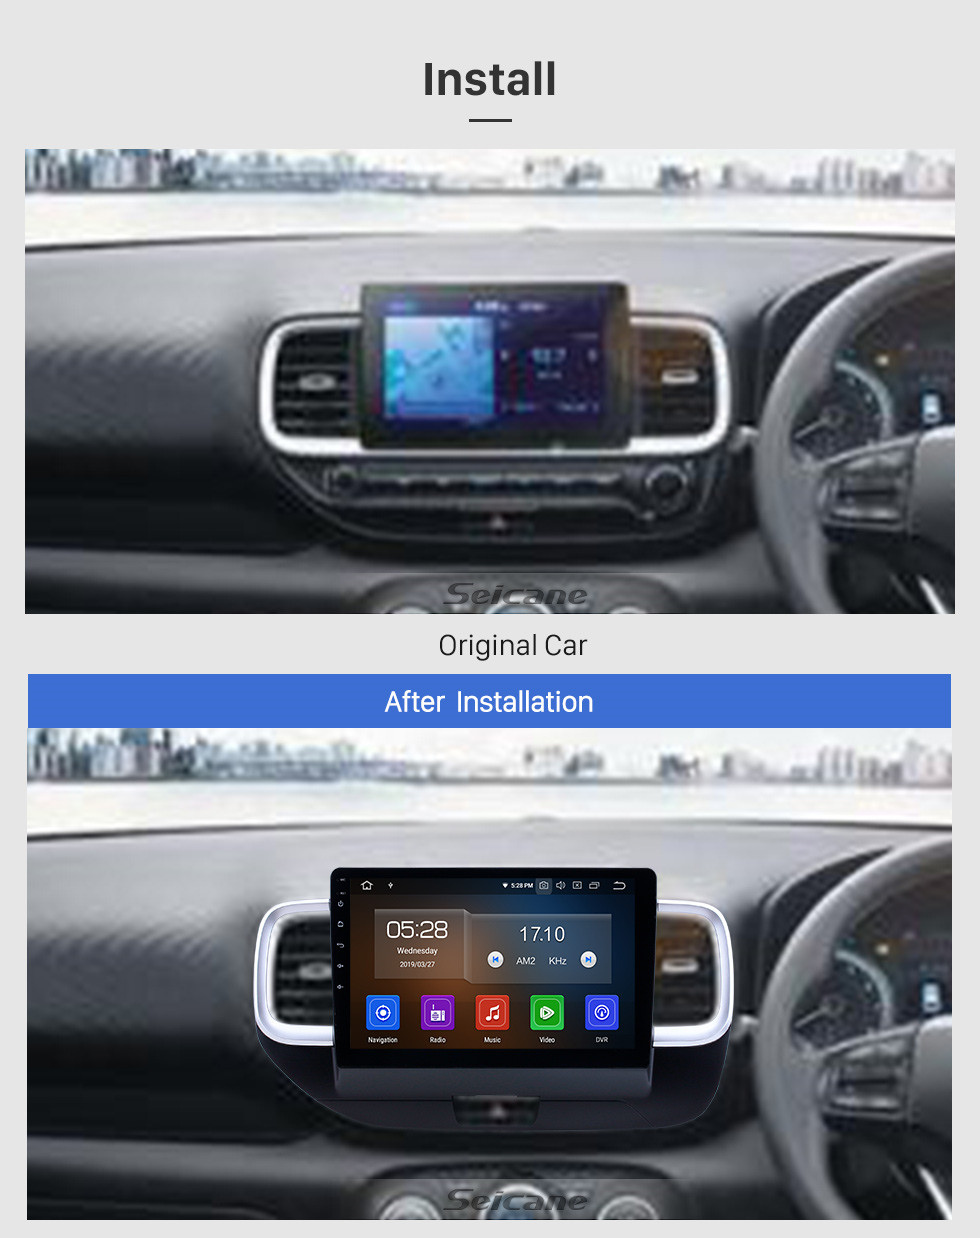 Seicane 10.1 inch 2019 Hyundai Venue RHD Android 10.0 GPS Navigation Radio Bluetooth HD Touchscreen Carplay support Mirror Link